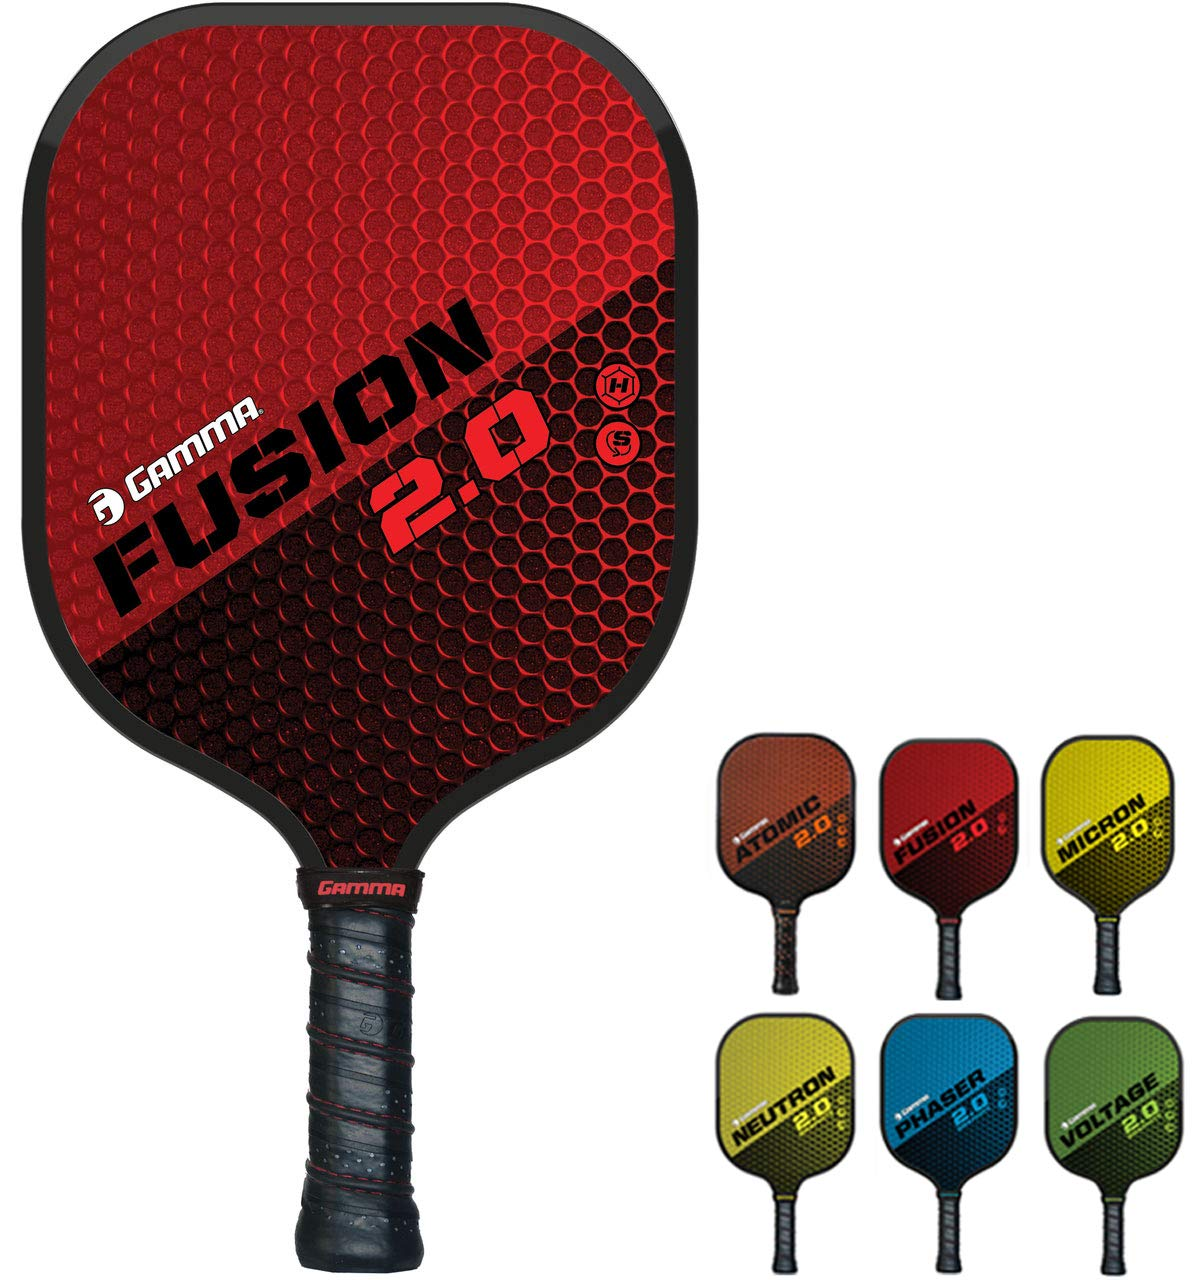 GAMMA Sports 2.0 Pickleball Paddles: Fusion 2.0 Pickleball Rackets - Textured Fiberglass Face - Mens and Womens Pickle Ball Racquet - Indoor and Outdoor Racket - Red Pickle-Ball Paddle - 8 oz by Gamma